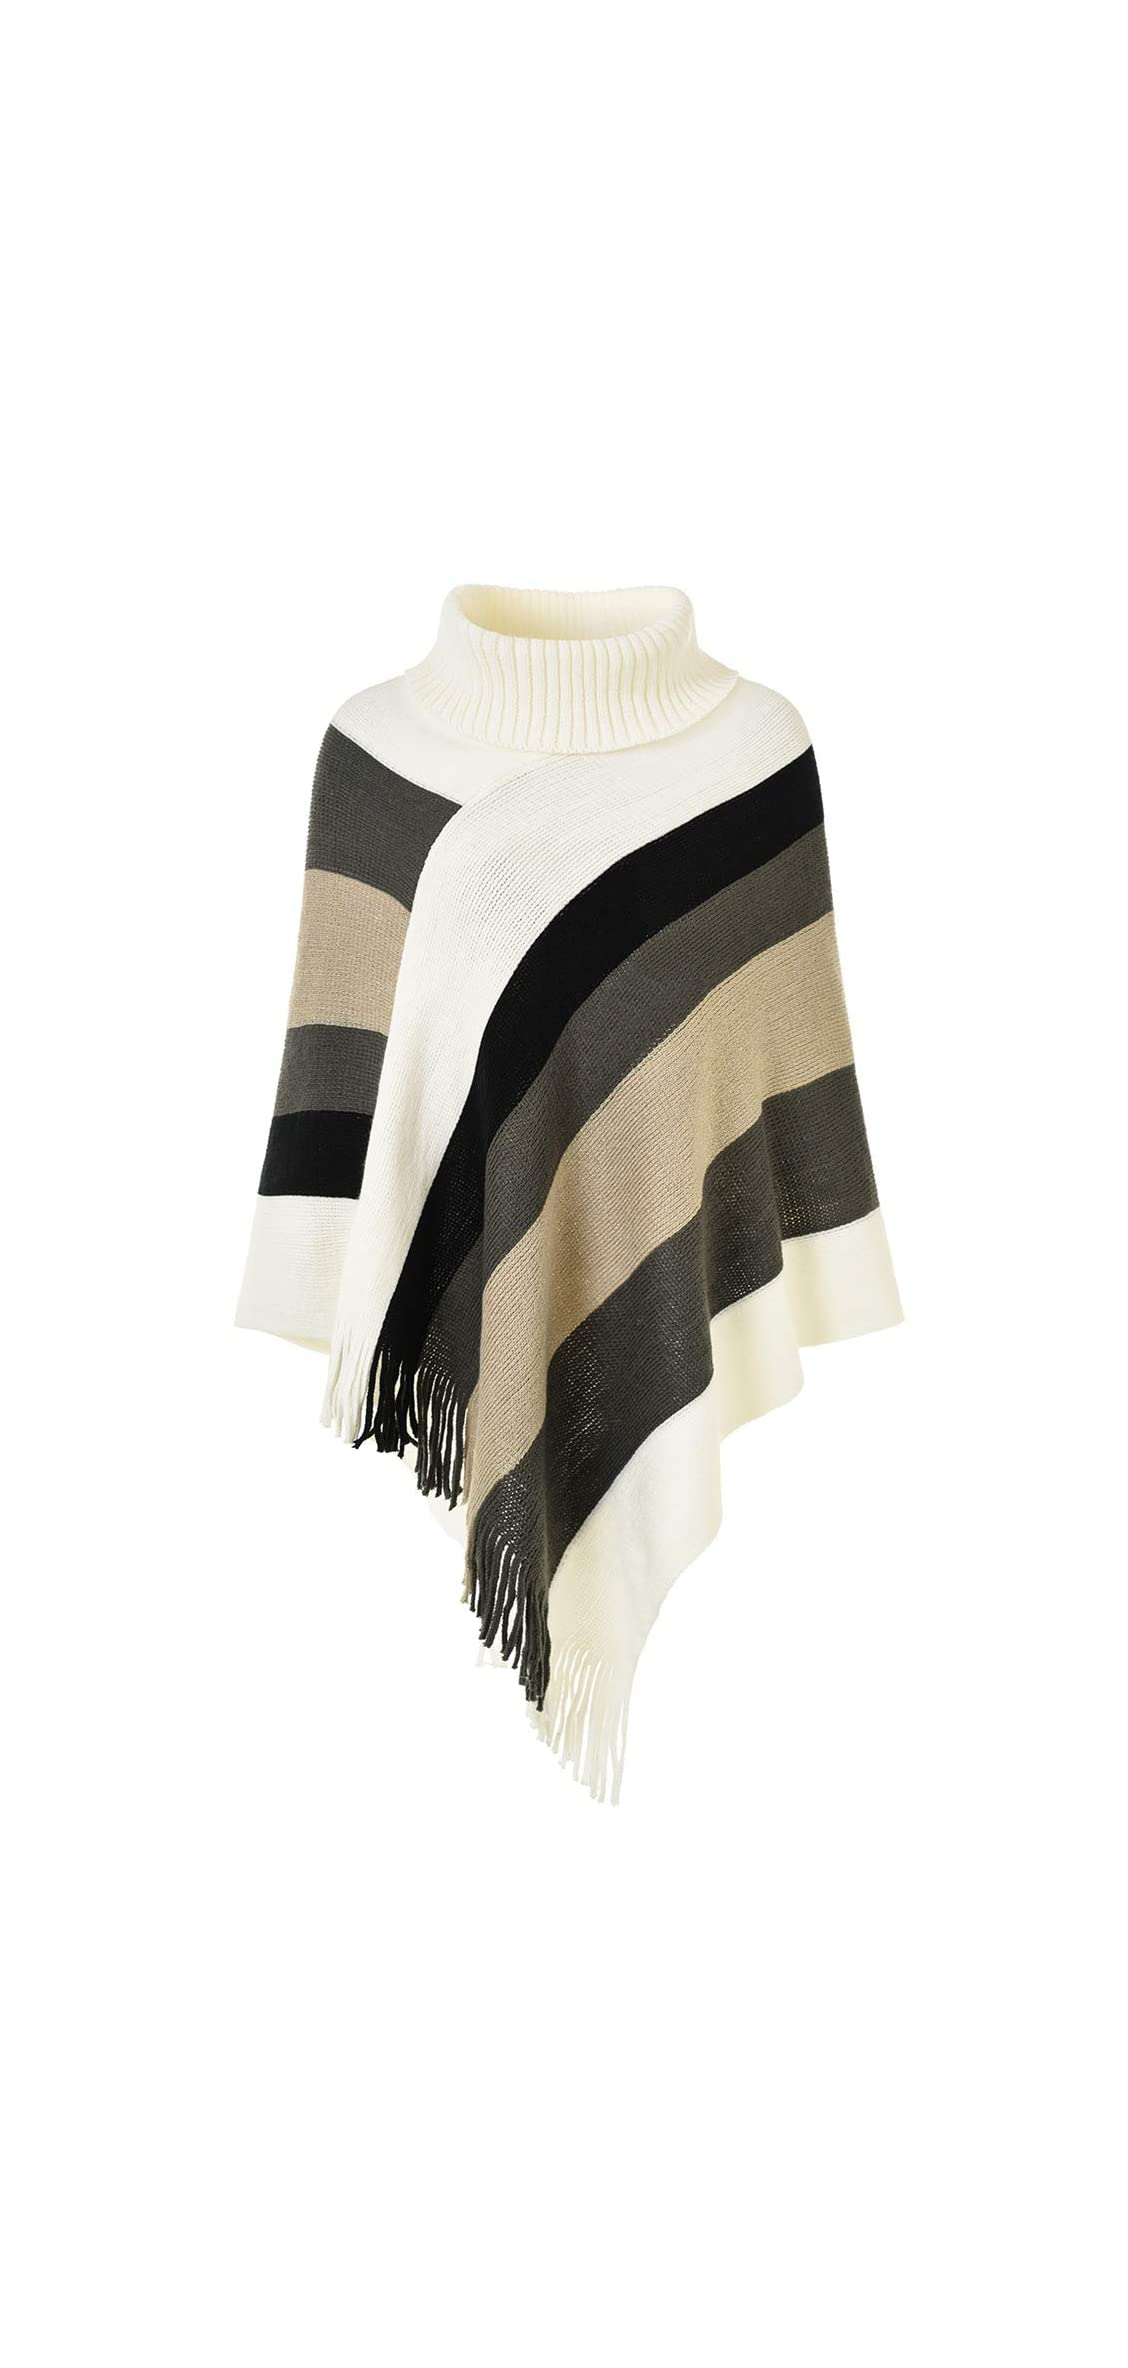 Womens Elegant Knitted Poncho Top With Stripe Patterns